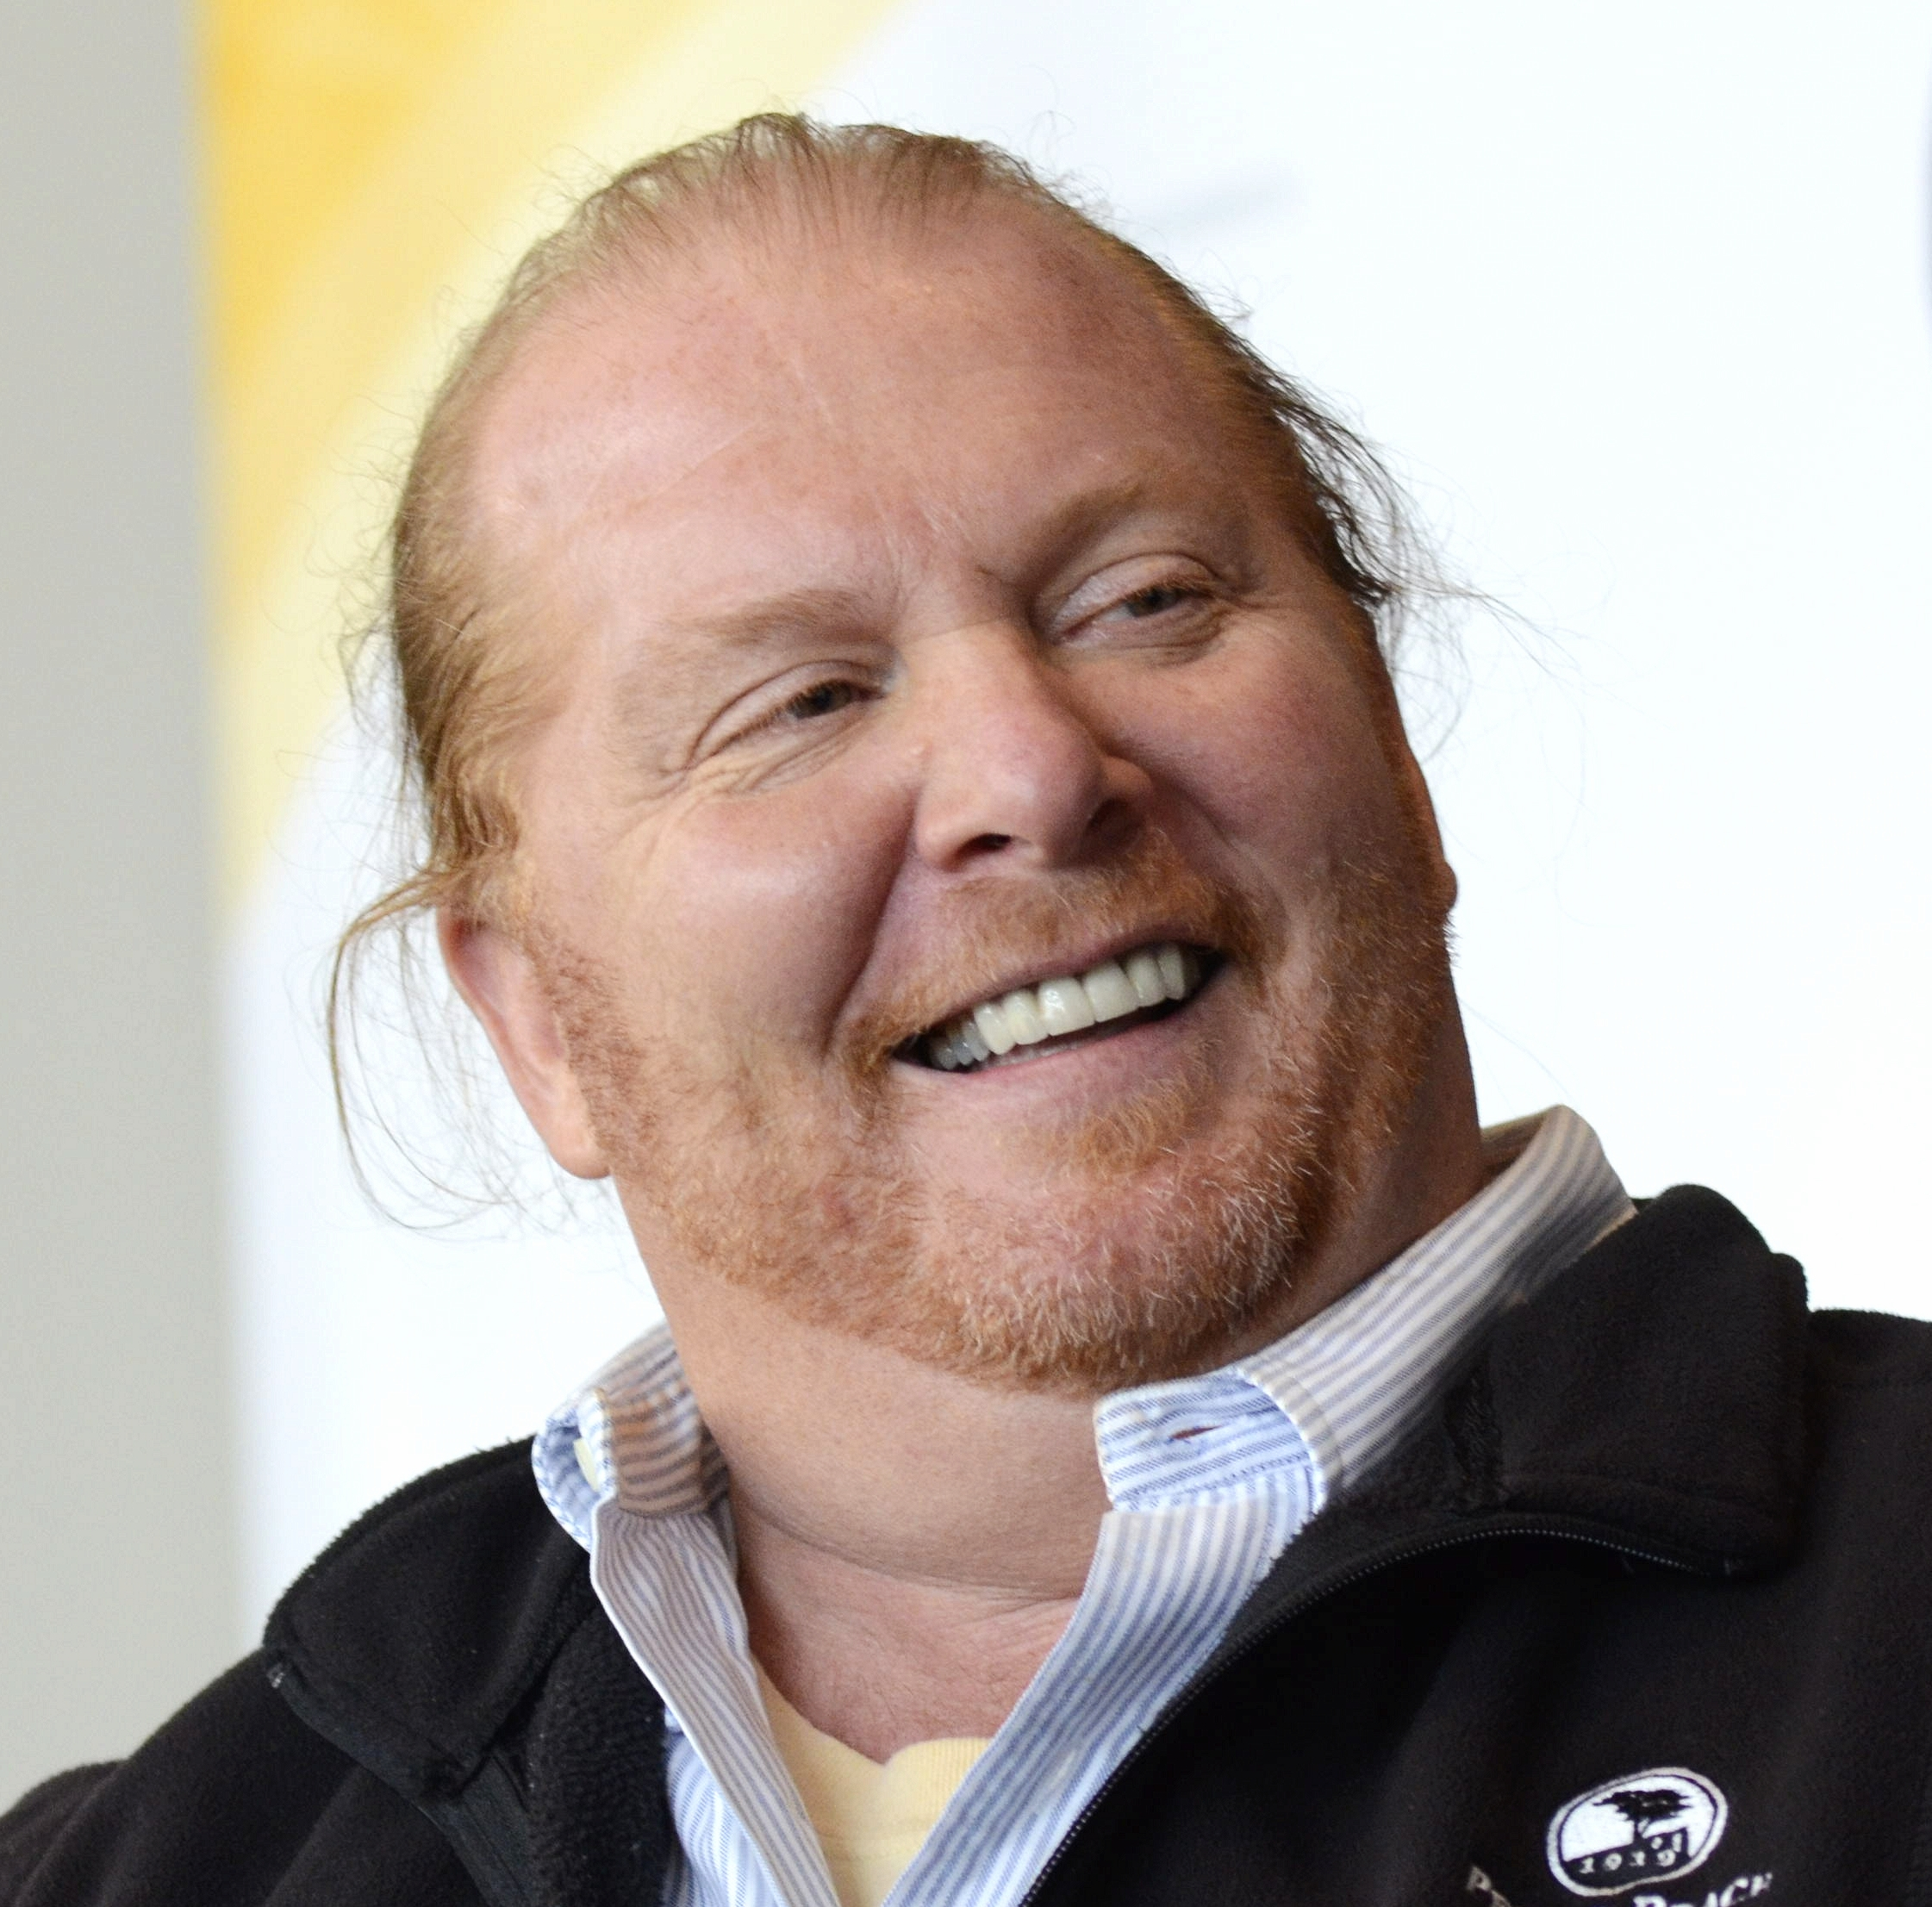 Target and Walmart join Eataly and ABC in backing away from Batali